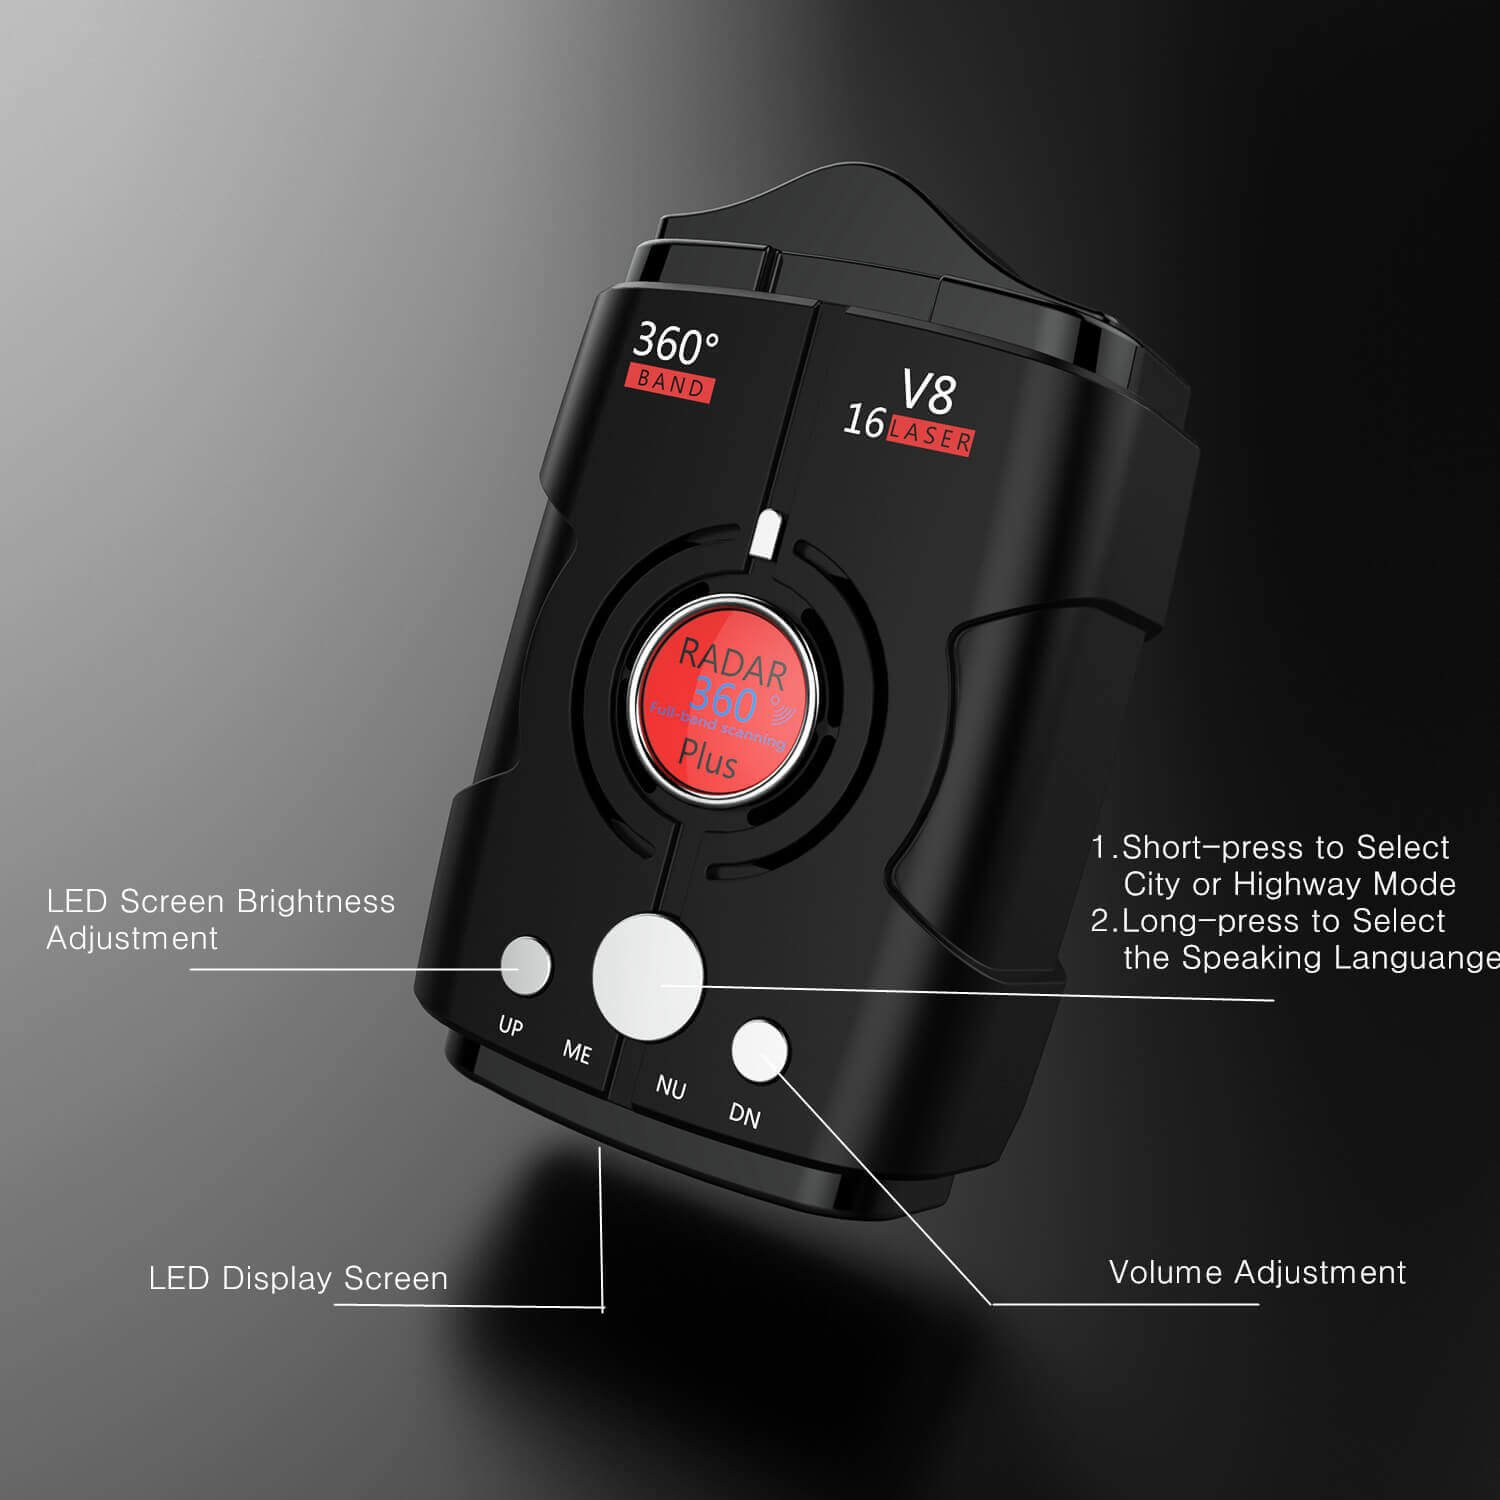 Radar Detectors for Cars, Voice Alert and Speed Alarm System with 360 Degree Detection, City/Highway Mode Radar Detector by AZGGN (Image #3)